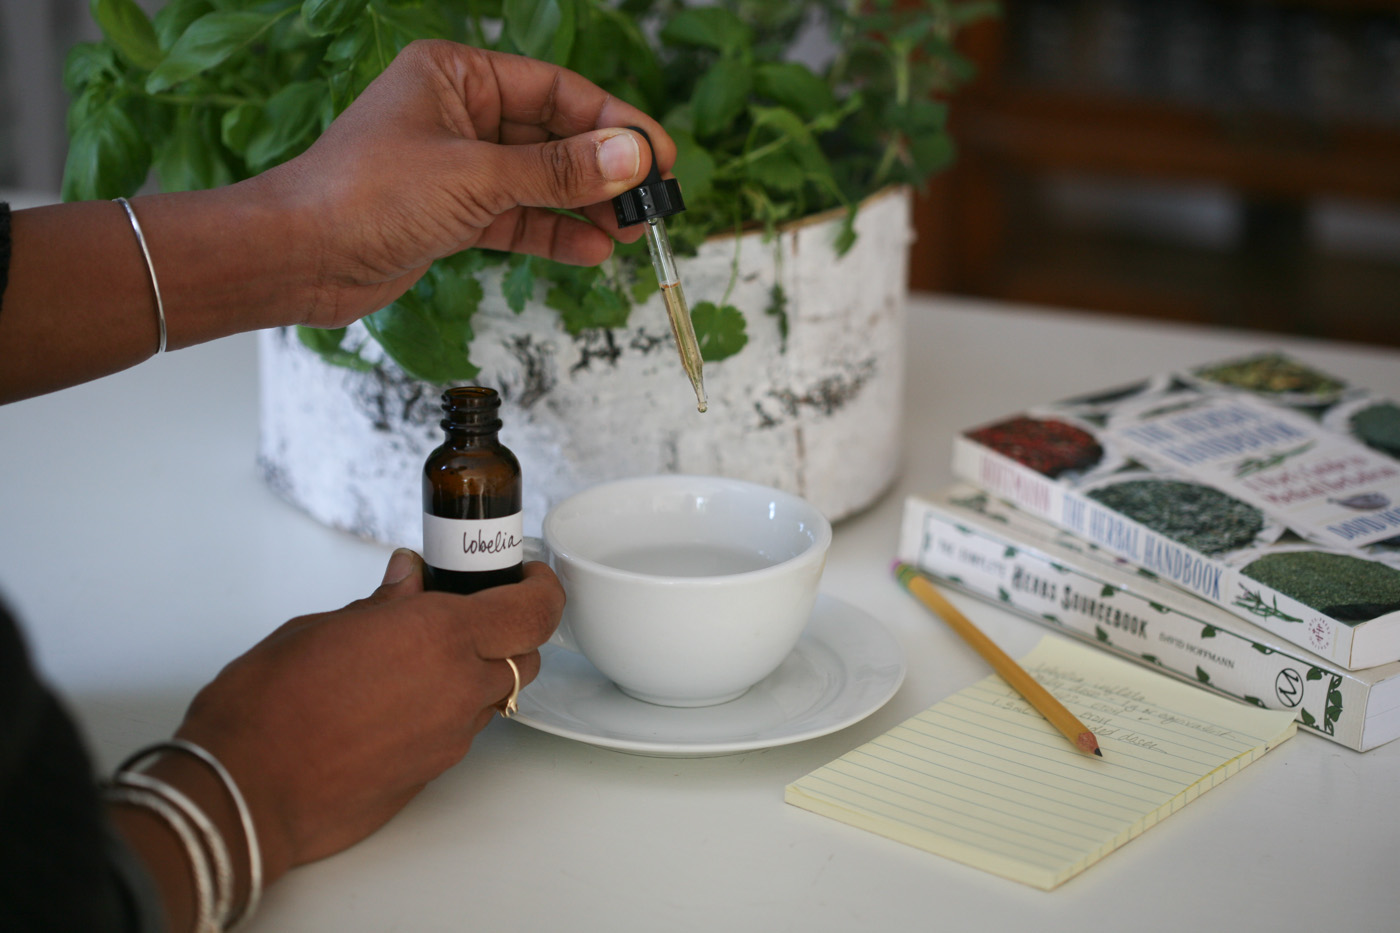 How To Use Low-Dose Botanicals Like Lobelia Safely   Herbal Academy   Learn what low-dose botanicals are and proper ways to use them safely. We'll look specifically at the herb lobelia (Lobelia inflata).